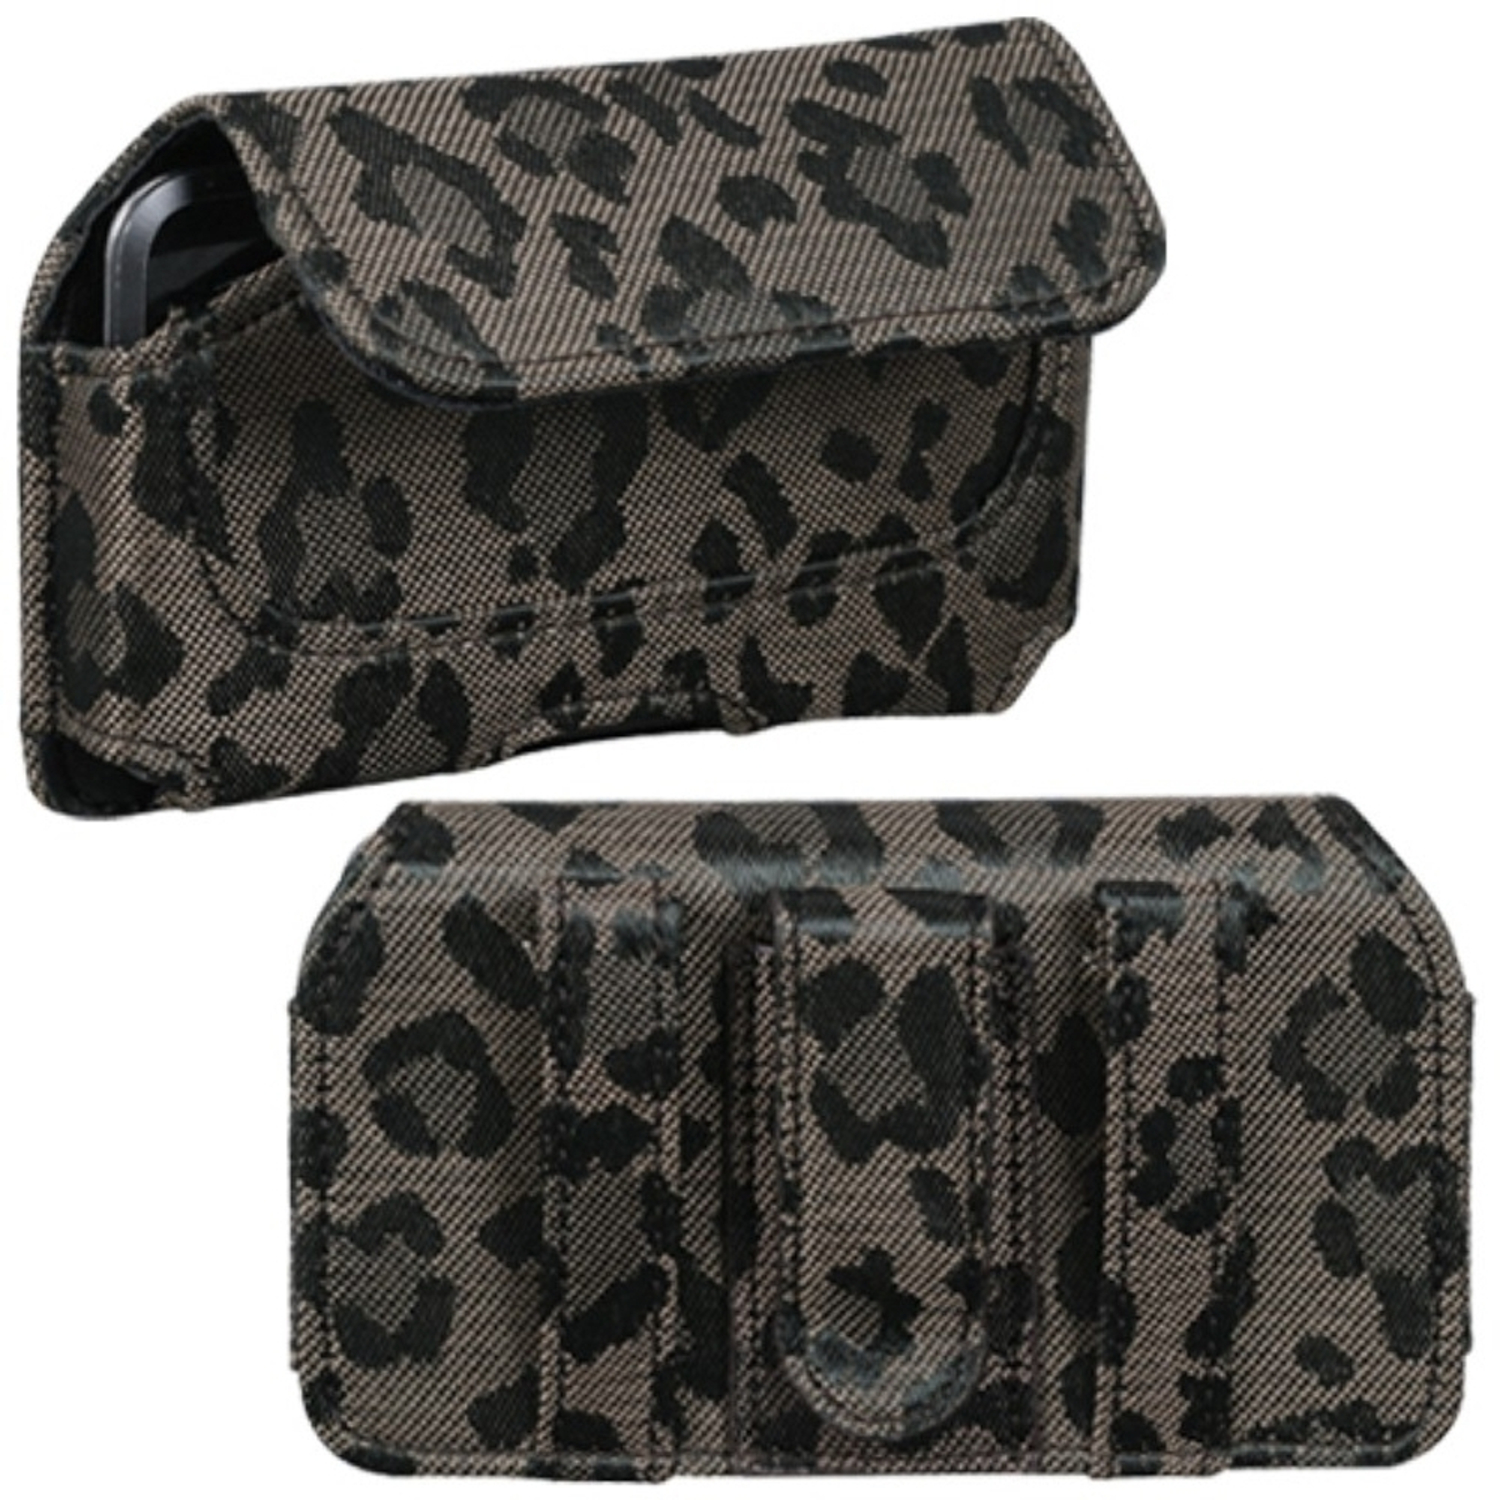 Insten Horizontal Pouch Case (722601) (Coffee Watermark)(NO Package) for APPLE: iPod touch 1st 2nd 3rd 4th Gen